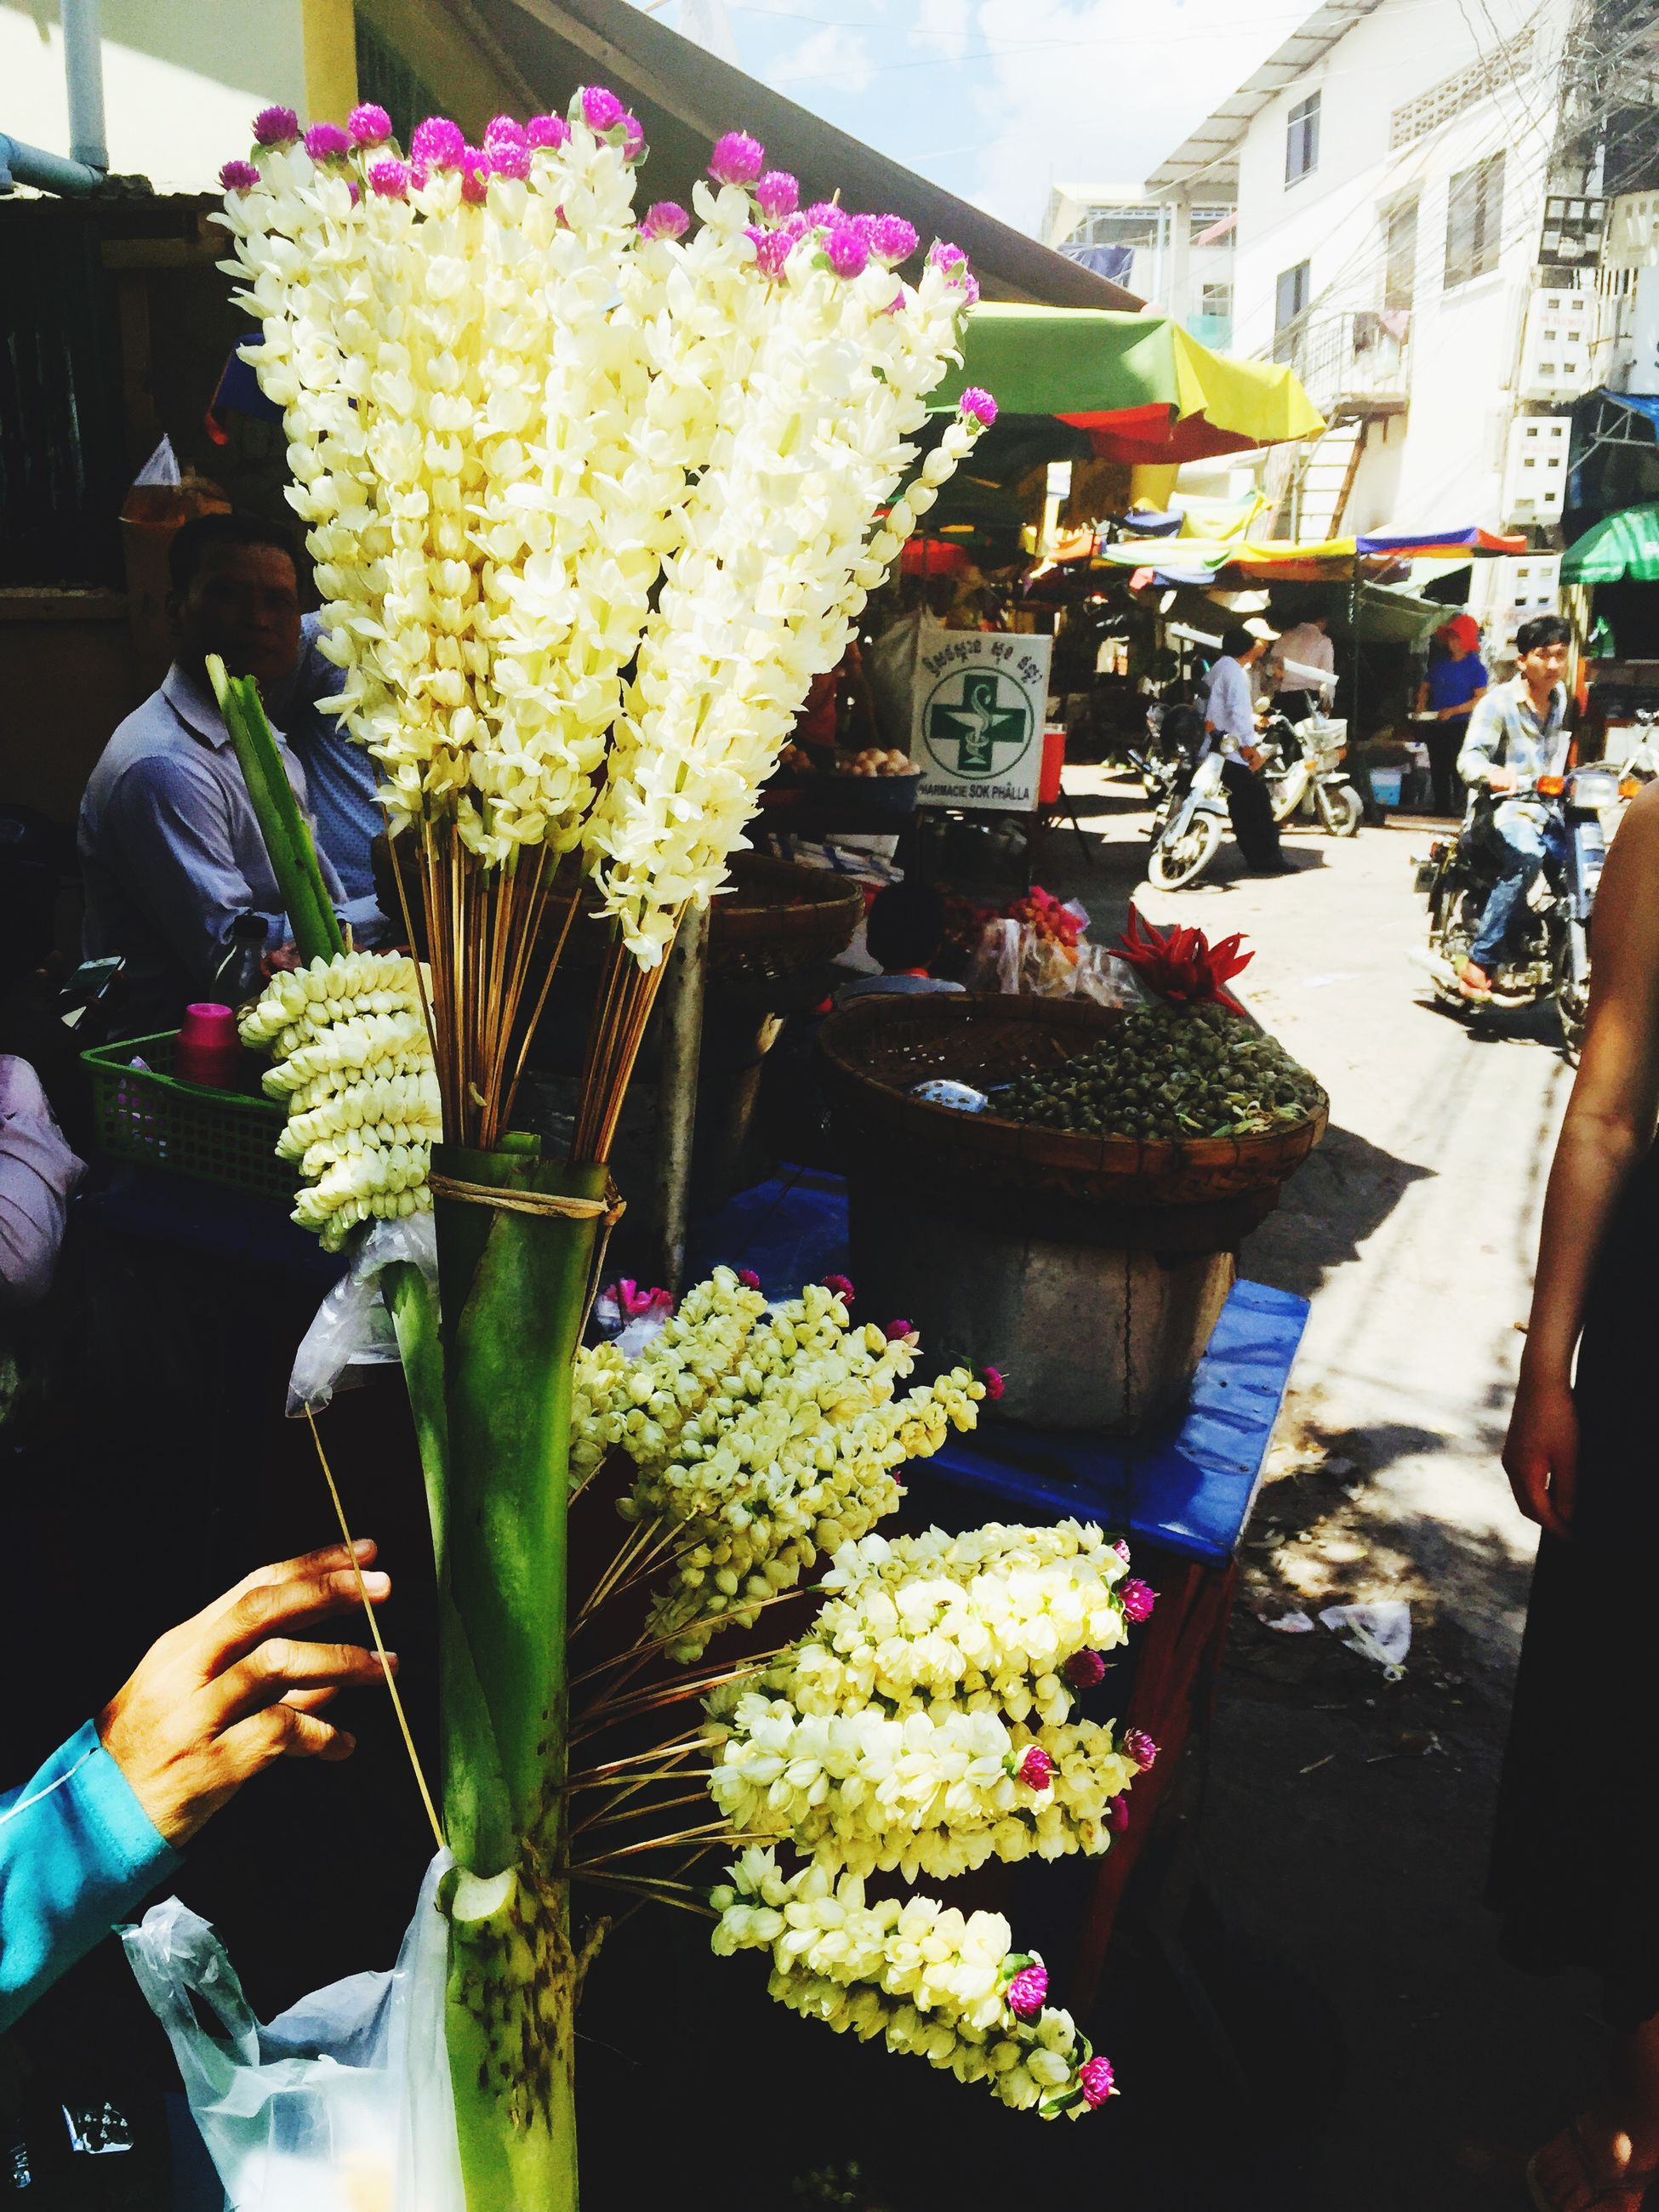 freshness, food and drink, flower, market stall, market, lifestyles, food, for sale, retail, person, variation, men, building exterior, holding, incidental people, leisure activity, architecture, choice